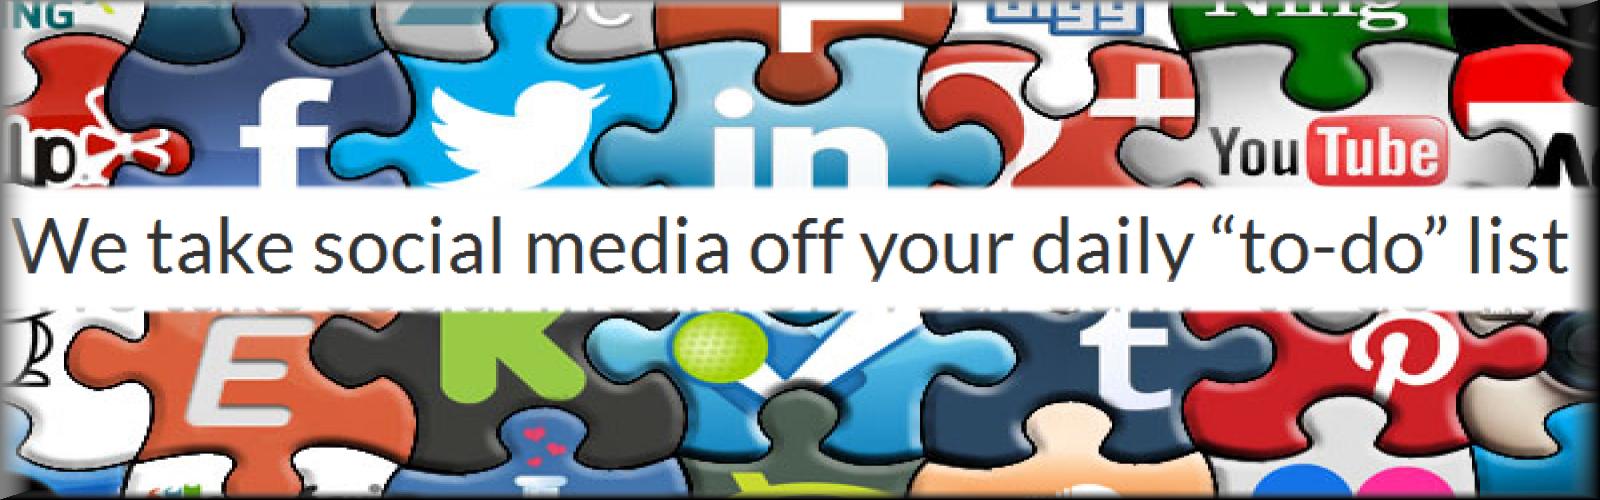 Social media marketing picture